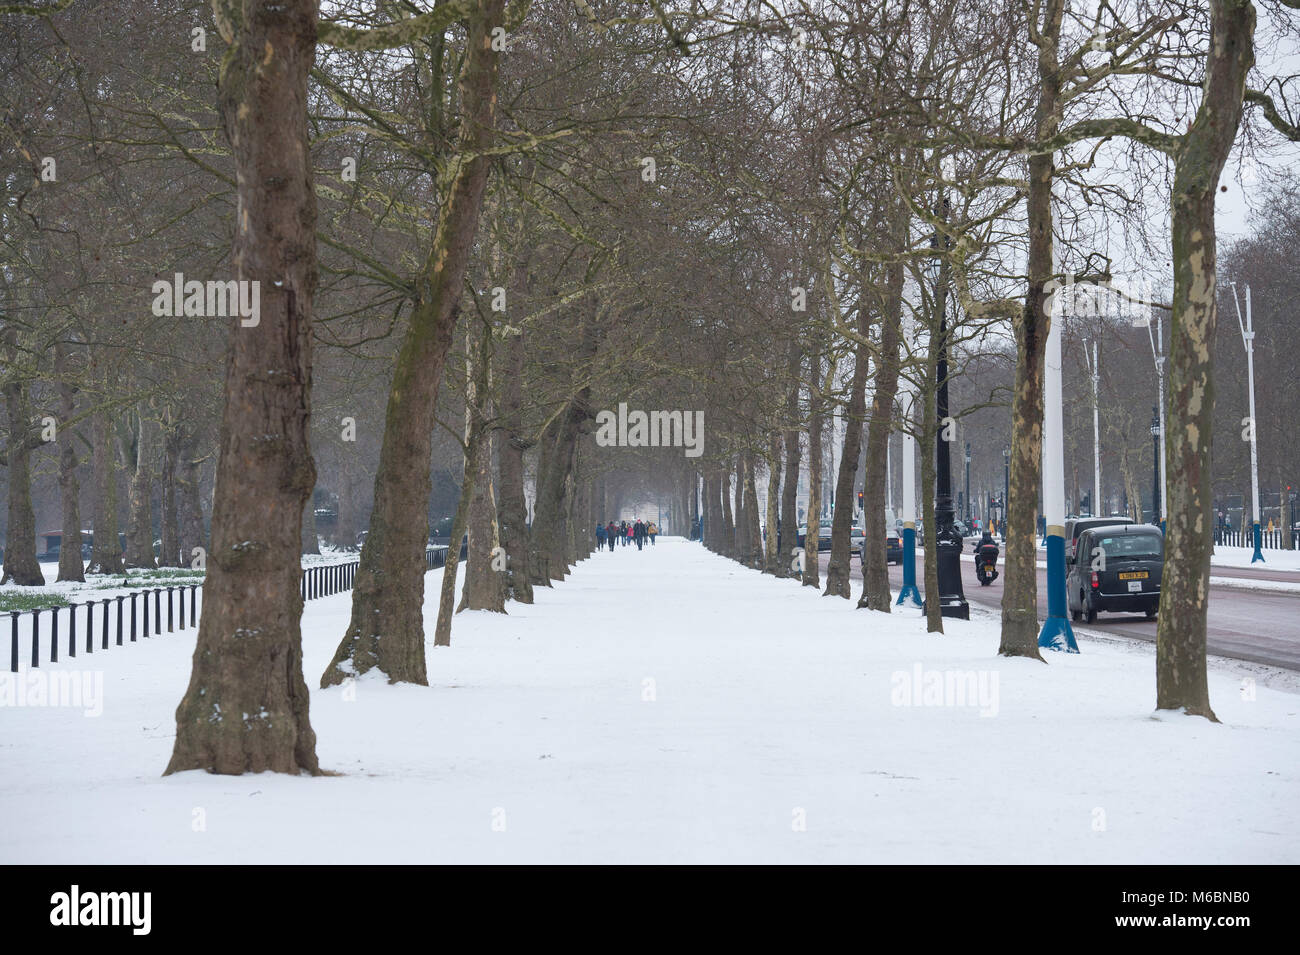 The Mall, London, UK. 1 March 2018. Overnight snow covers pavements on The Mall in Westminster. - Stock Image